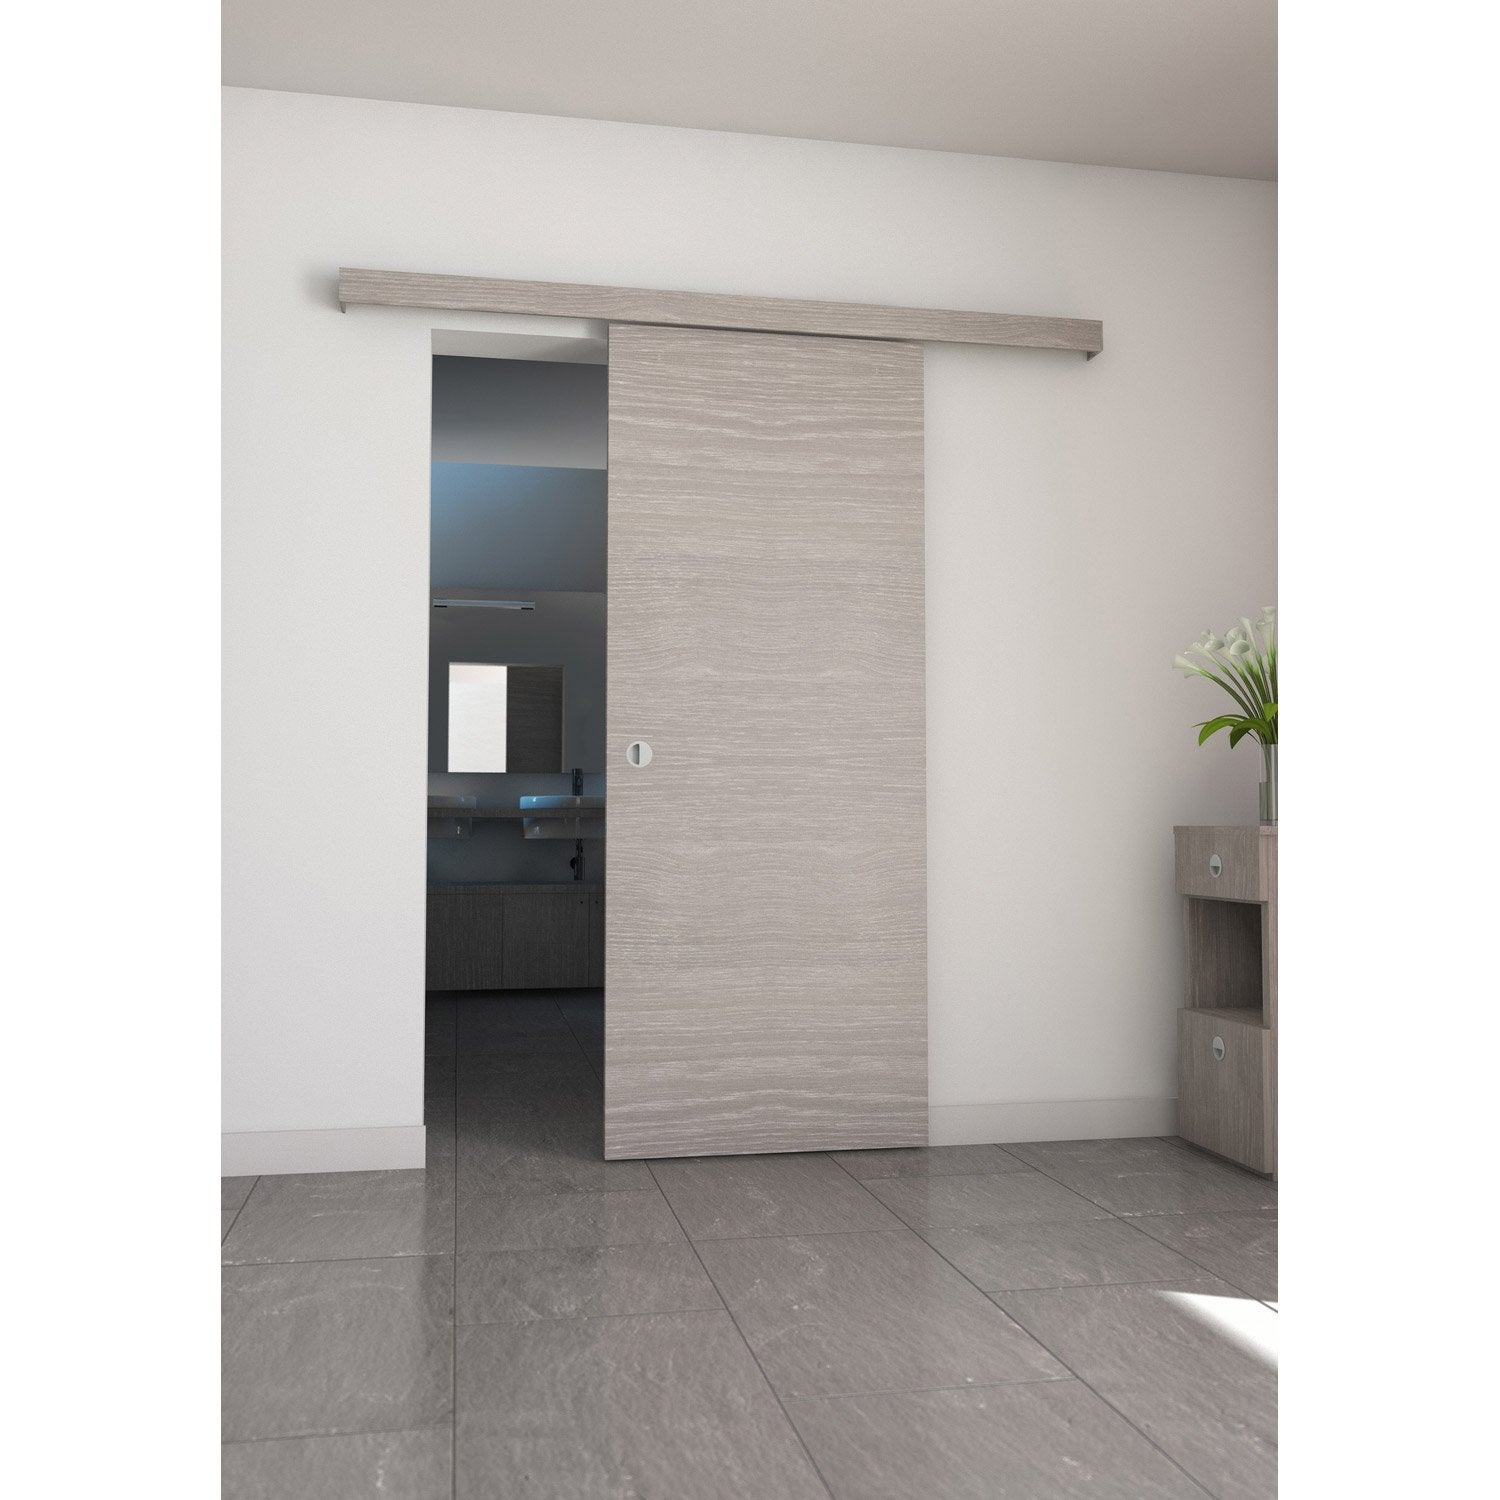 Ensemble porte coulissante coulicool mdf rev tu aluminium for Ensemble de douche leroy merlin